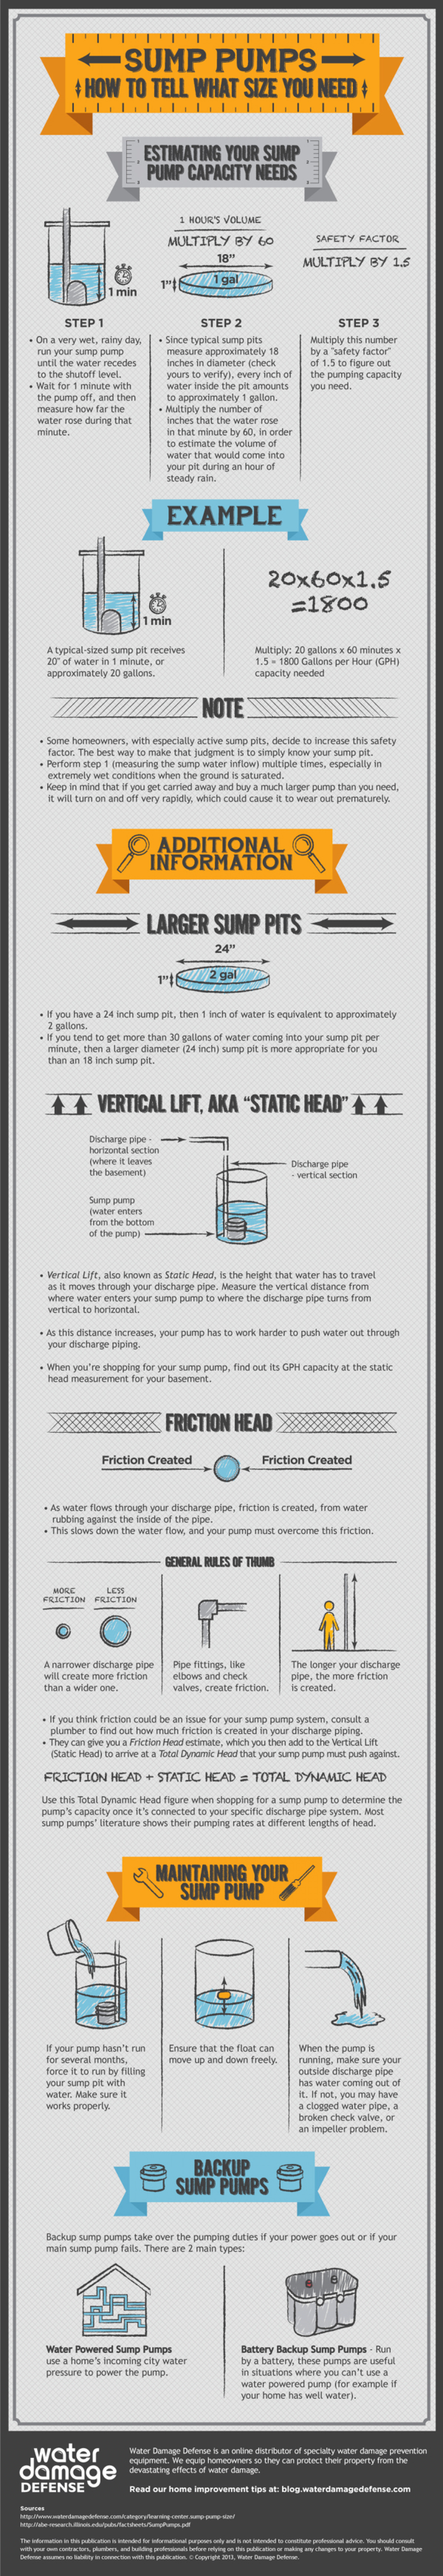 Sump Pumps - How to Tell What Size You Need Infographic